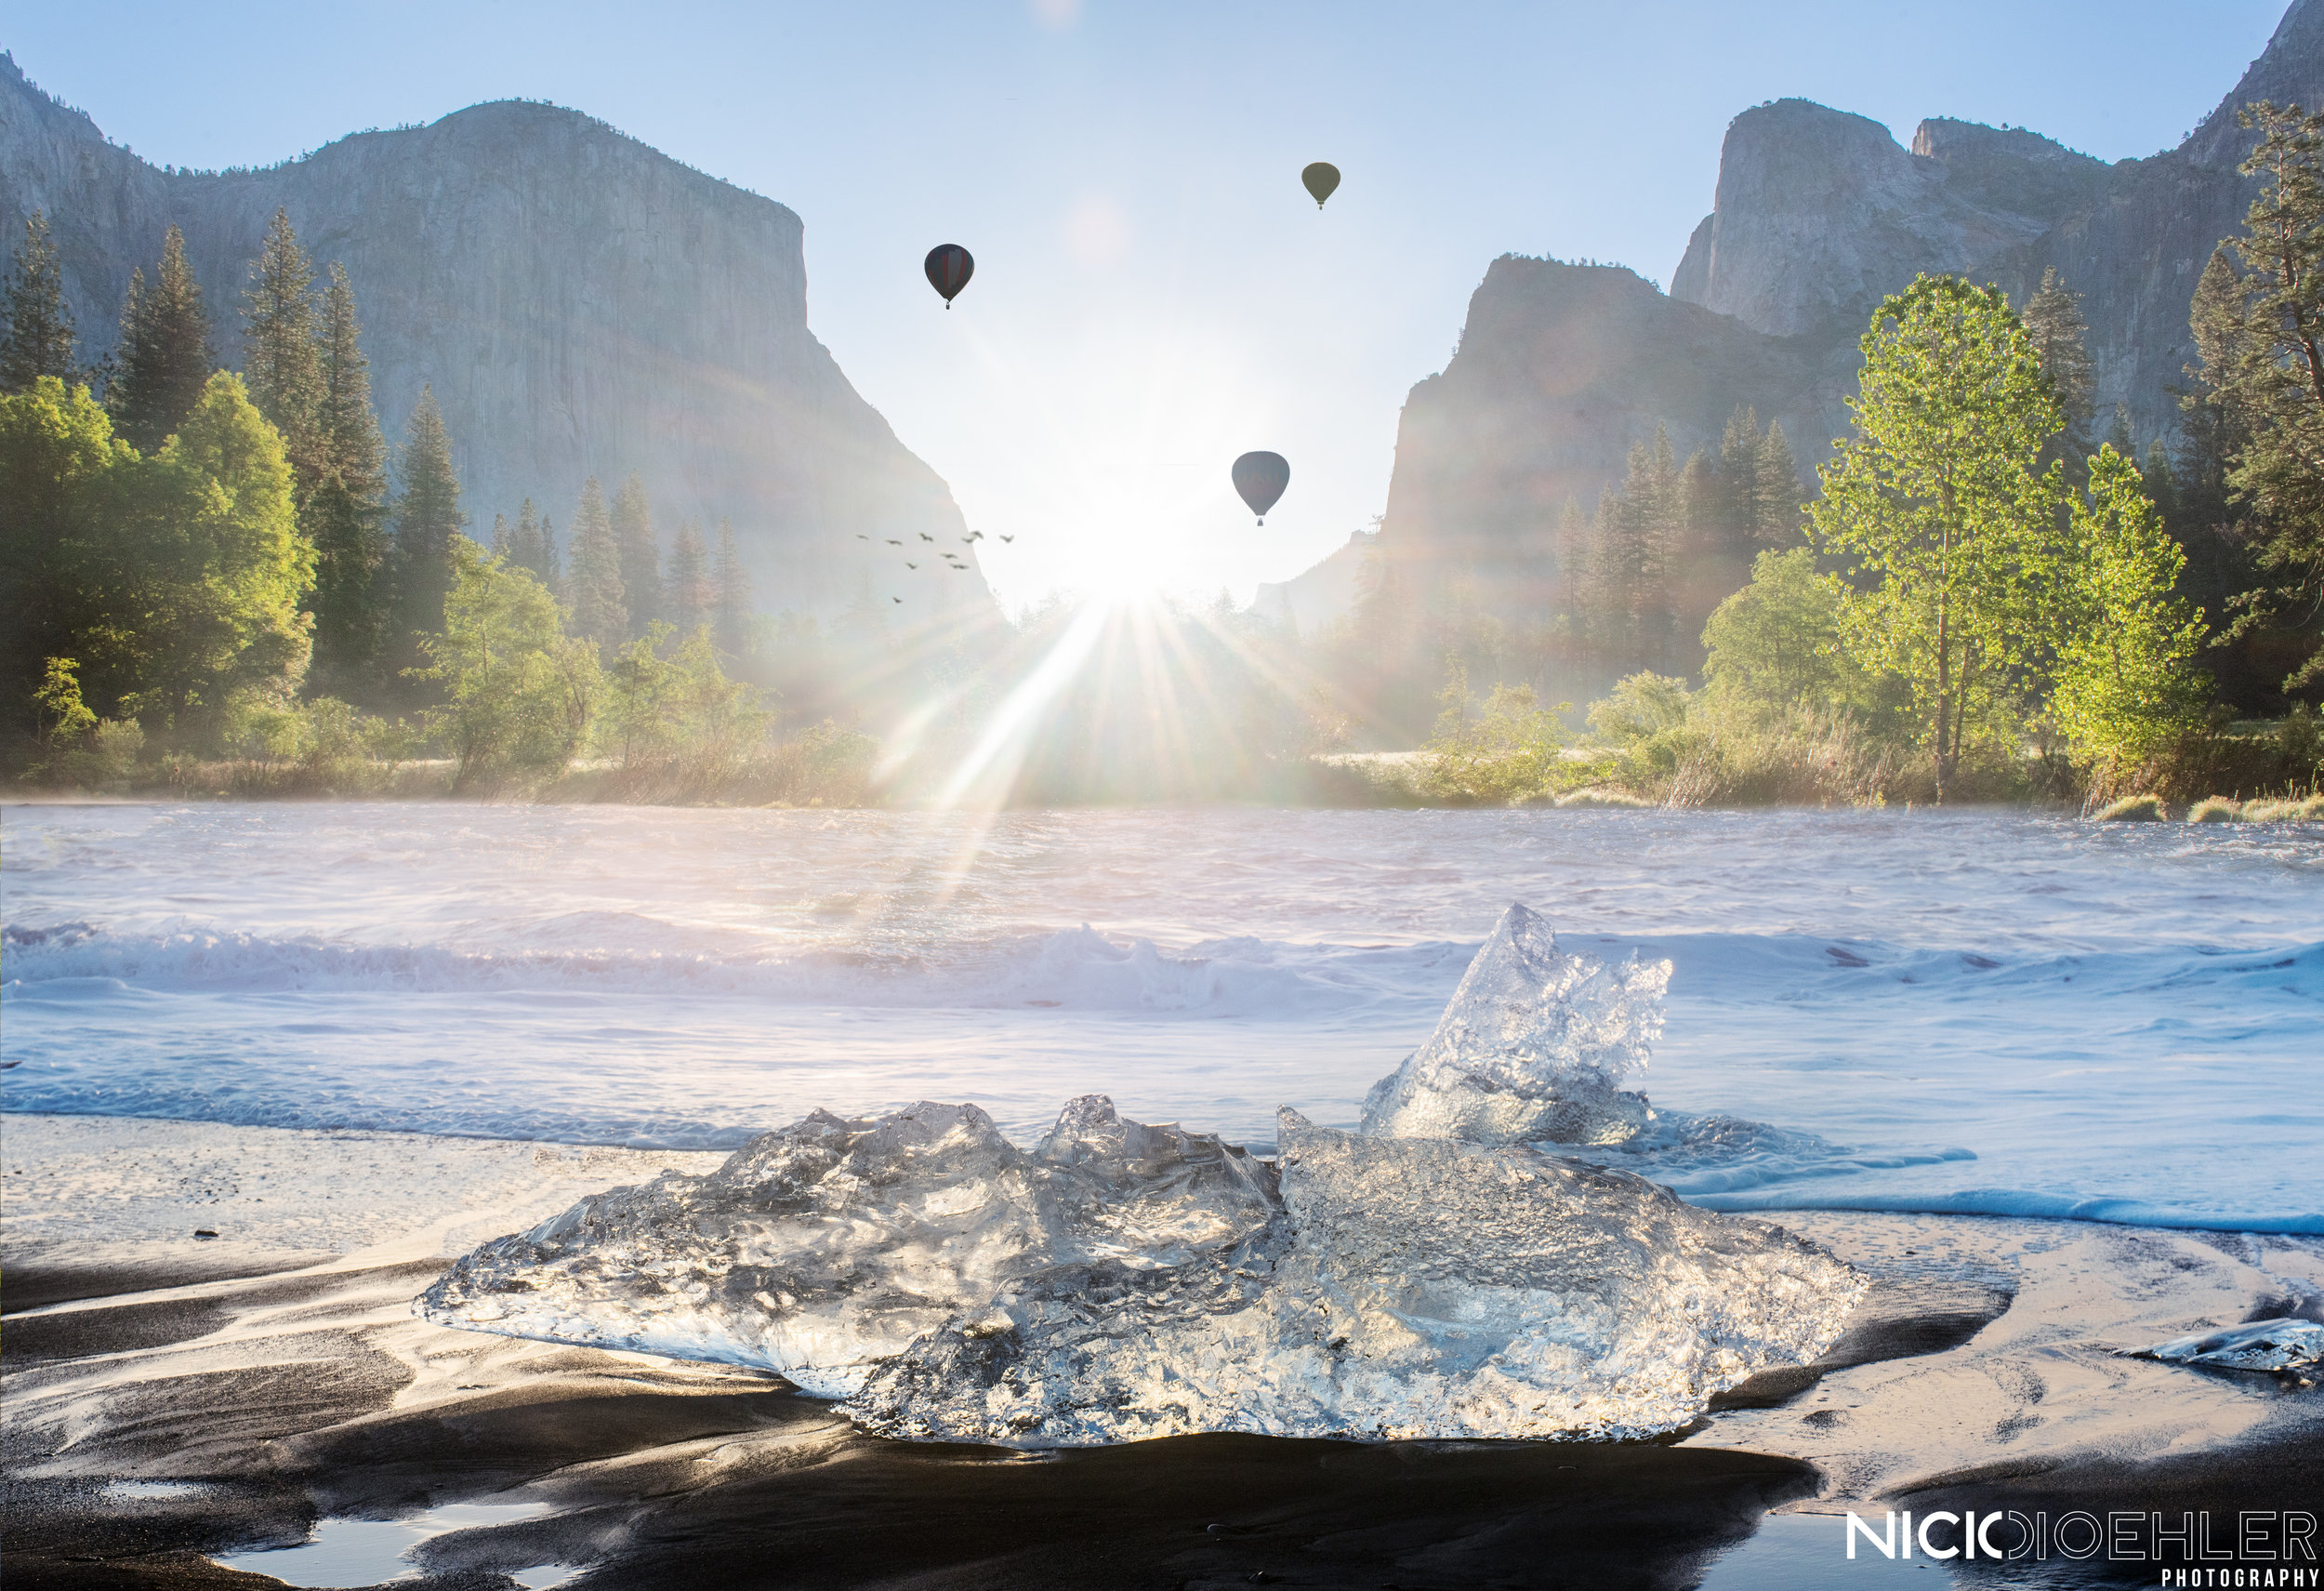 Yosemite Dream - I wanted this to be a dream in Yosemite National Park. Having the Hot Air Balloons brings me the dream of the valley. If one day they released Hot Air Balloons I'll be there. California made me think of hot so I added the ice to add the Irony.